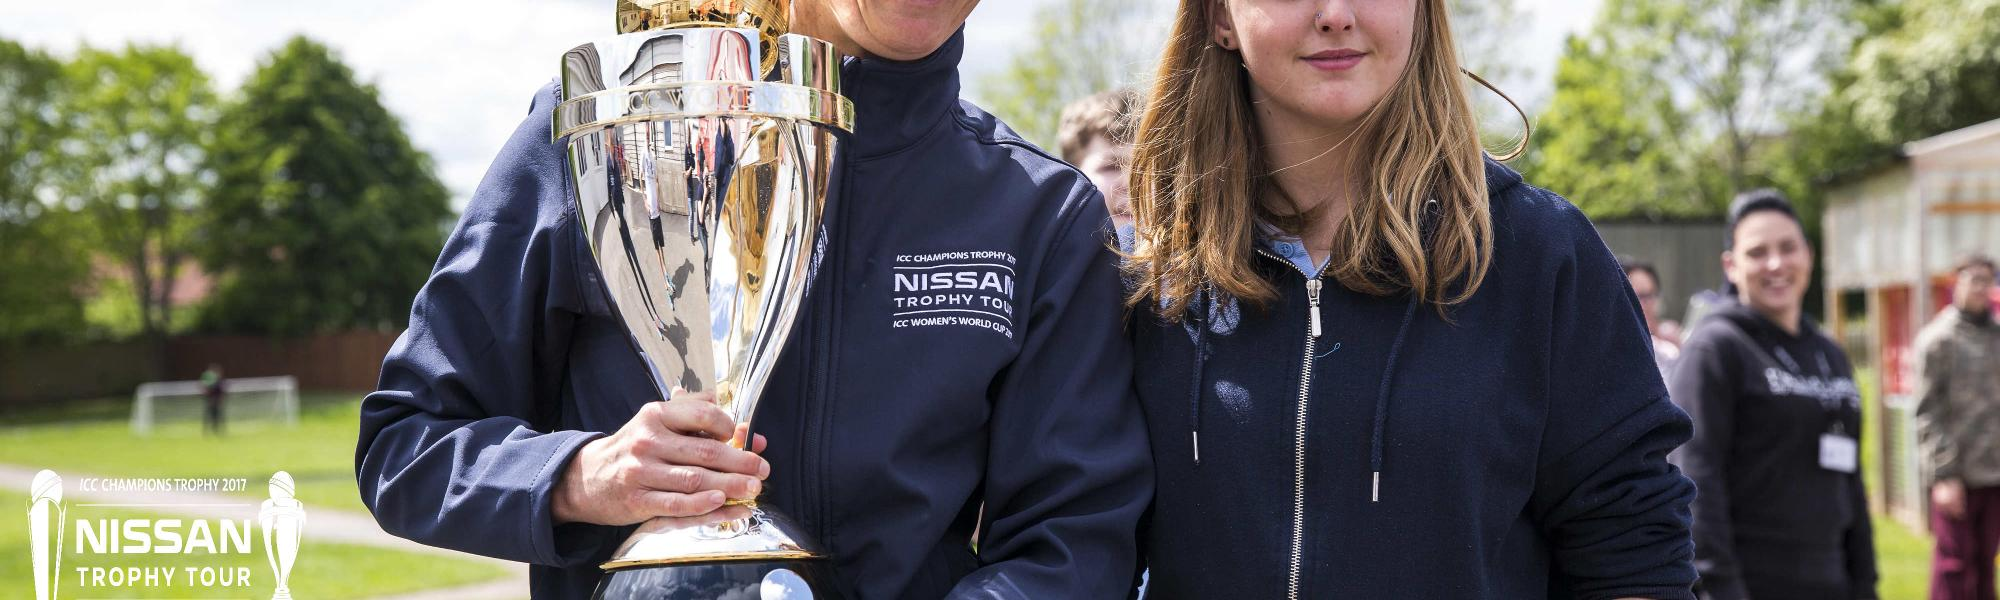 Charlotte Edwards, the former English captain, with the ICC Champions Trophy & ICC Women's World Cup on day one in Taunton during the England leg of the Nissan Trophy Tour.